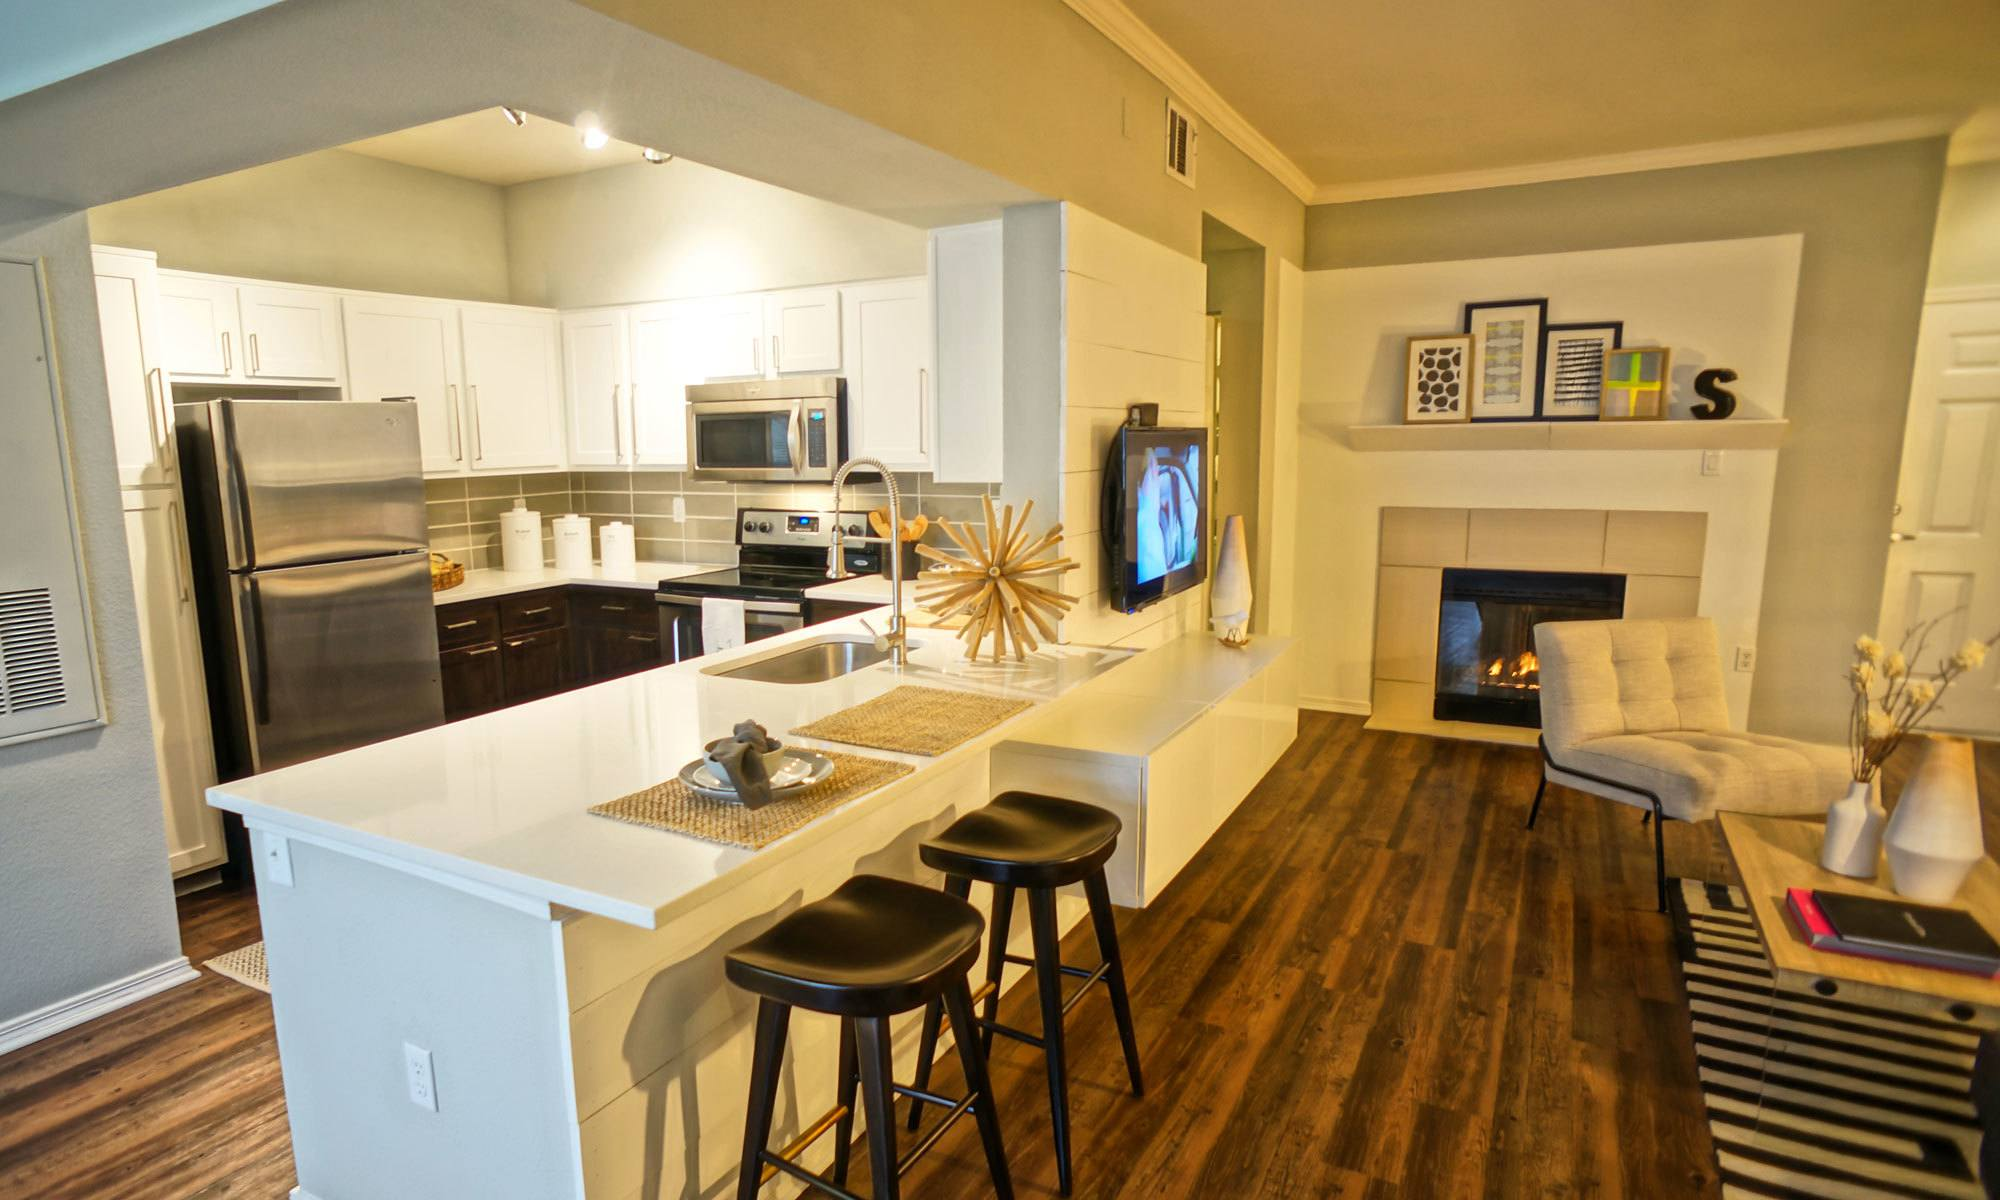 The Lodge at Willow Creek apartments in Lone Tree, CO